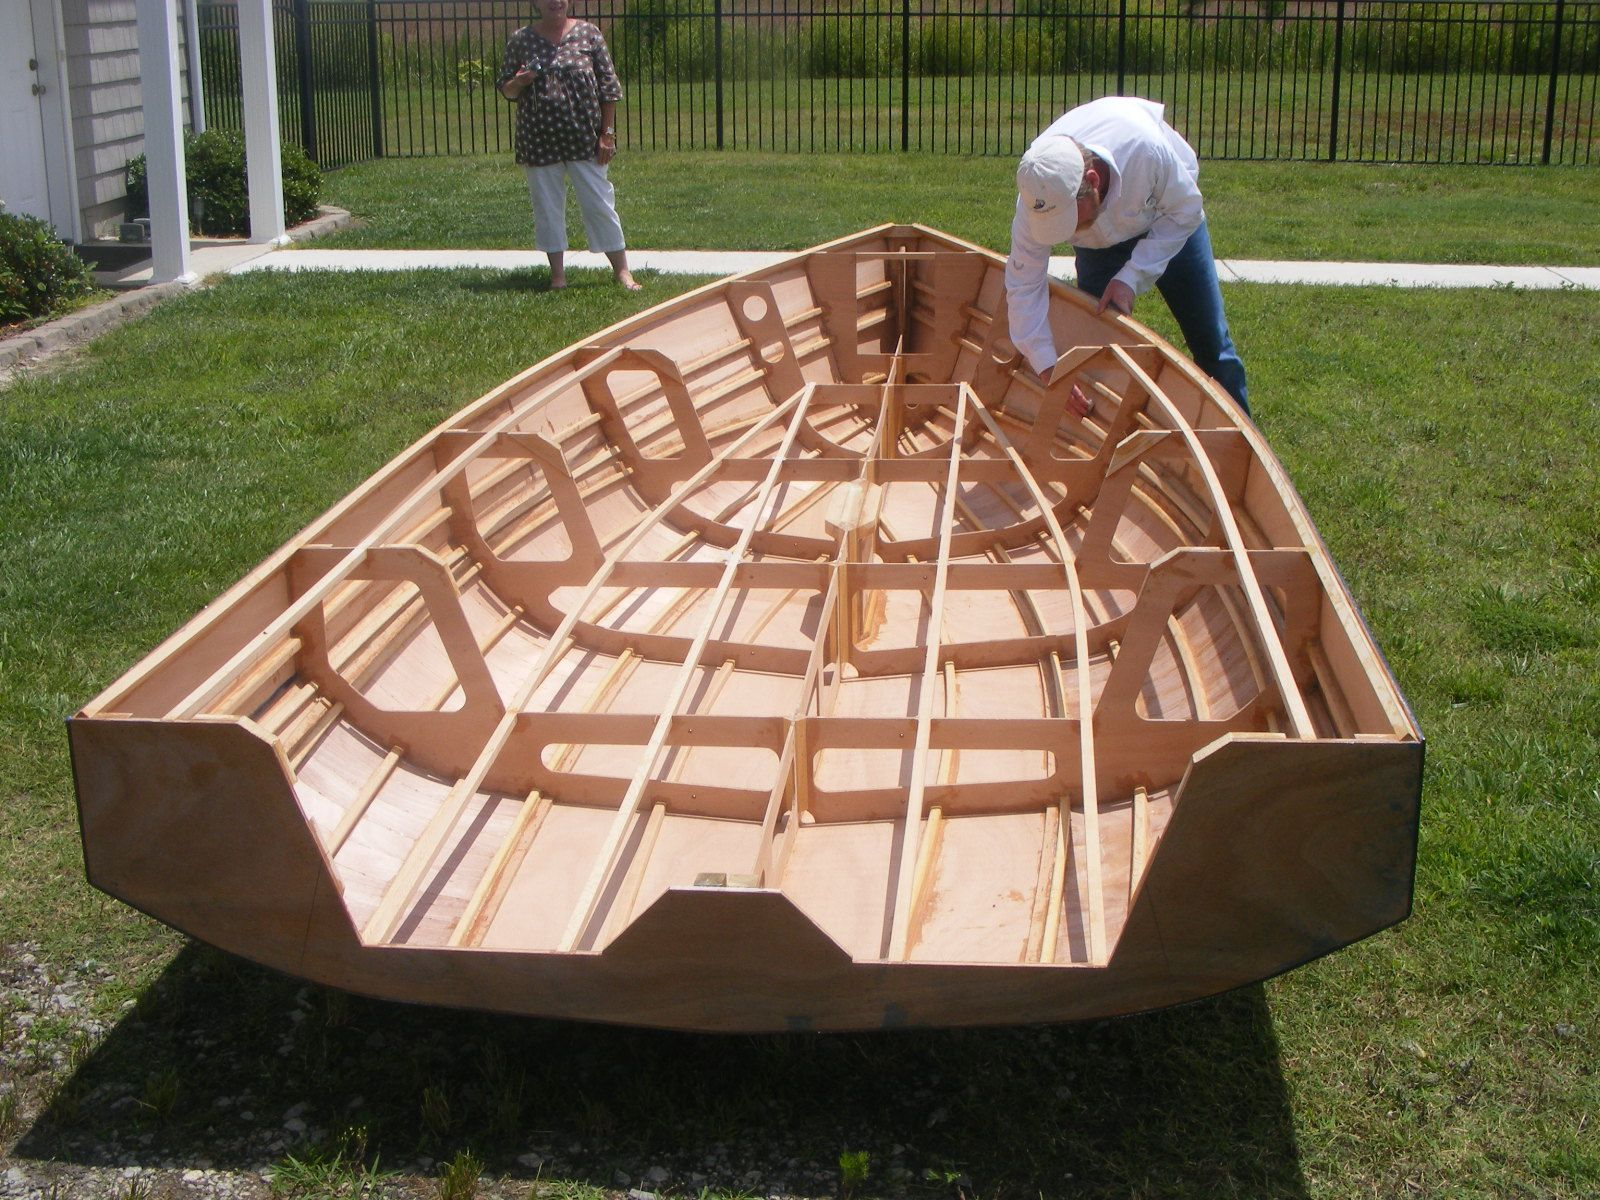 Building Wooden Boats Woodworking Workshop Construction